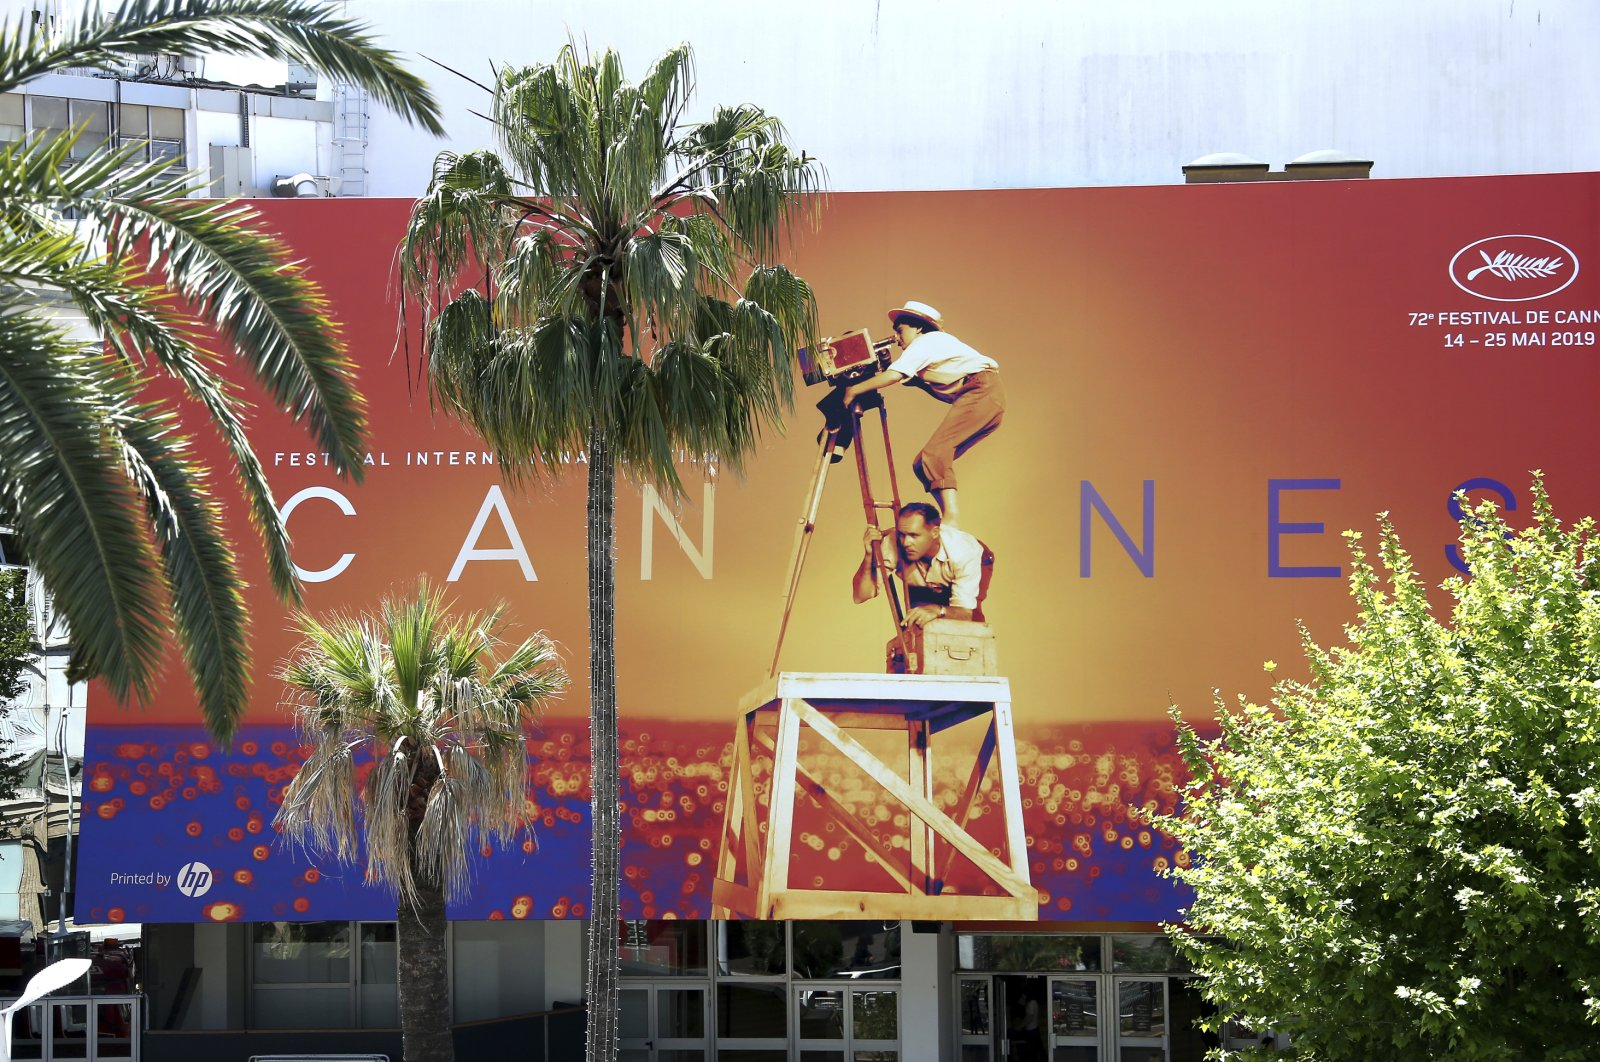 A view of the Palais des Festivals during the 72nd Cannes Film Festival in Cannes, southern France, May 13, 2019. (AP Photo)